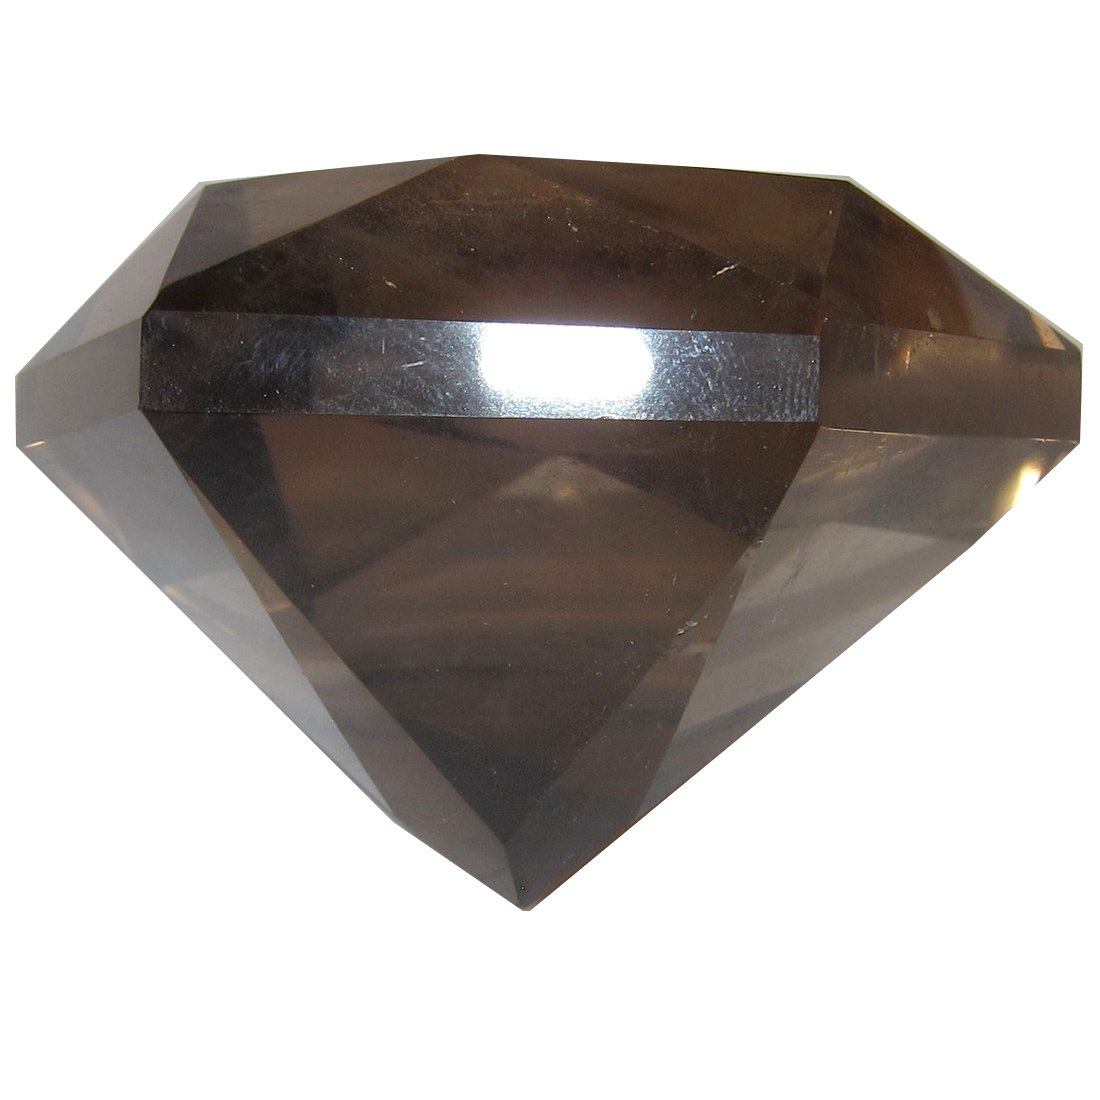 Smoky Quartz Polygon 53 Big Clear Crystal Multi Faceted Diamond Star of David Healing Spiritual Stone 2.5''